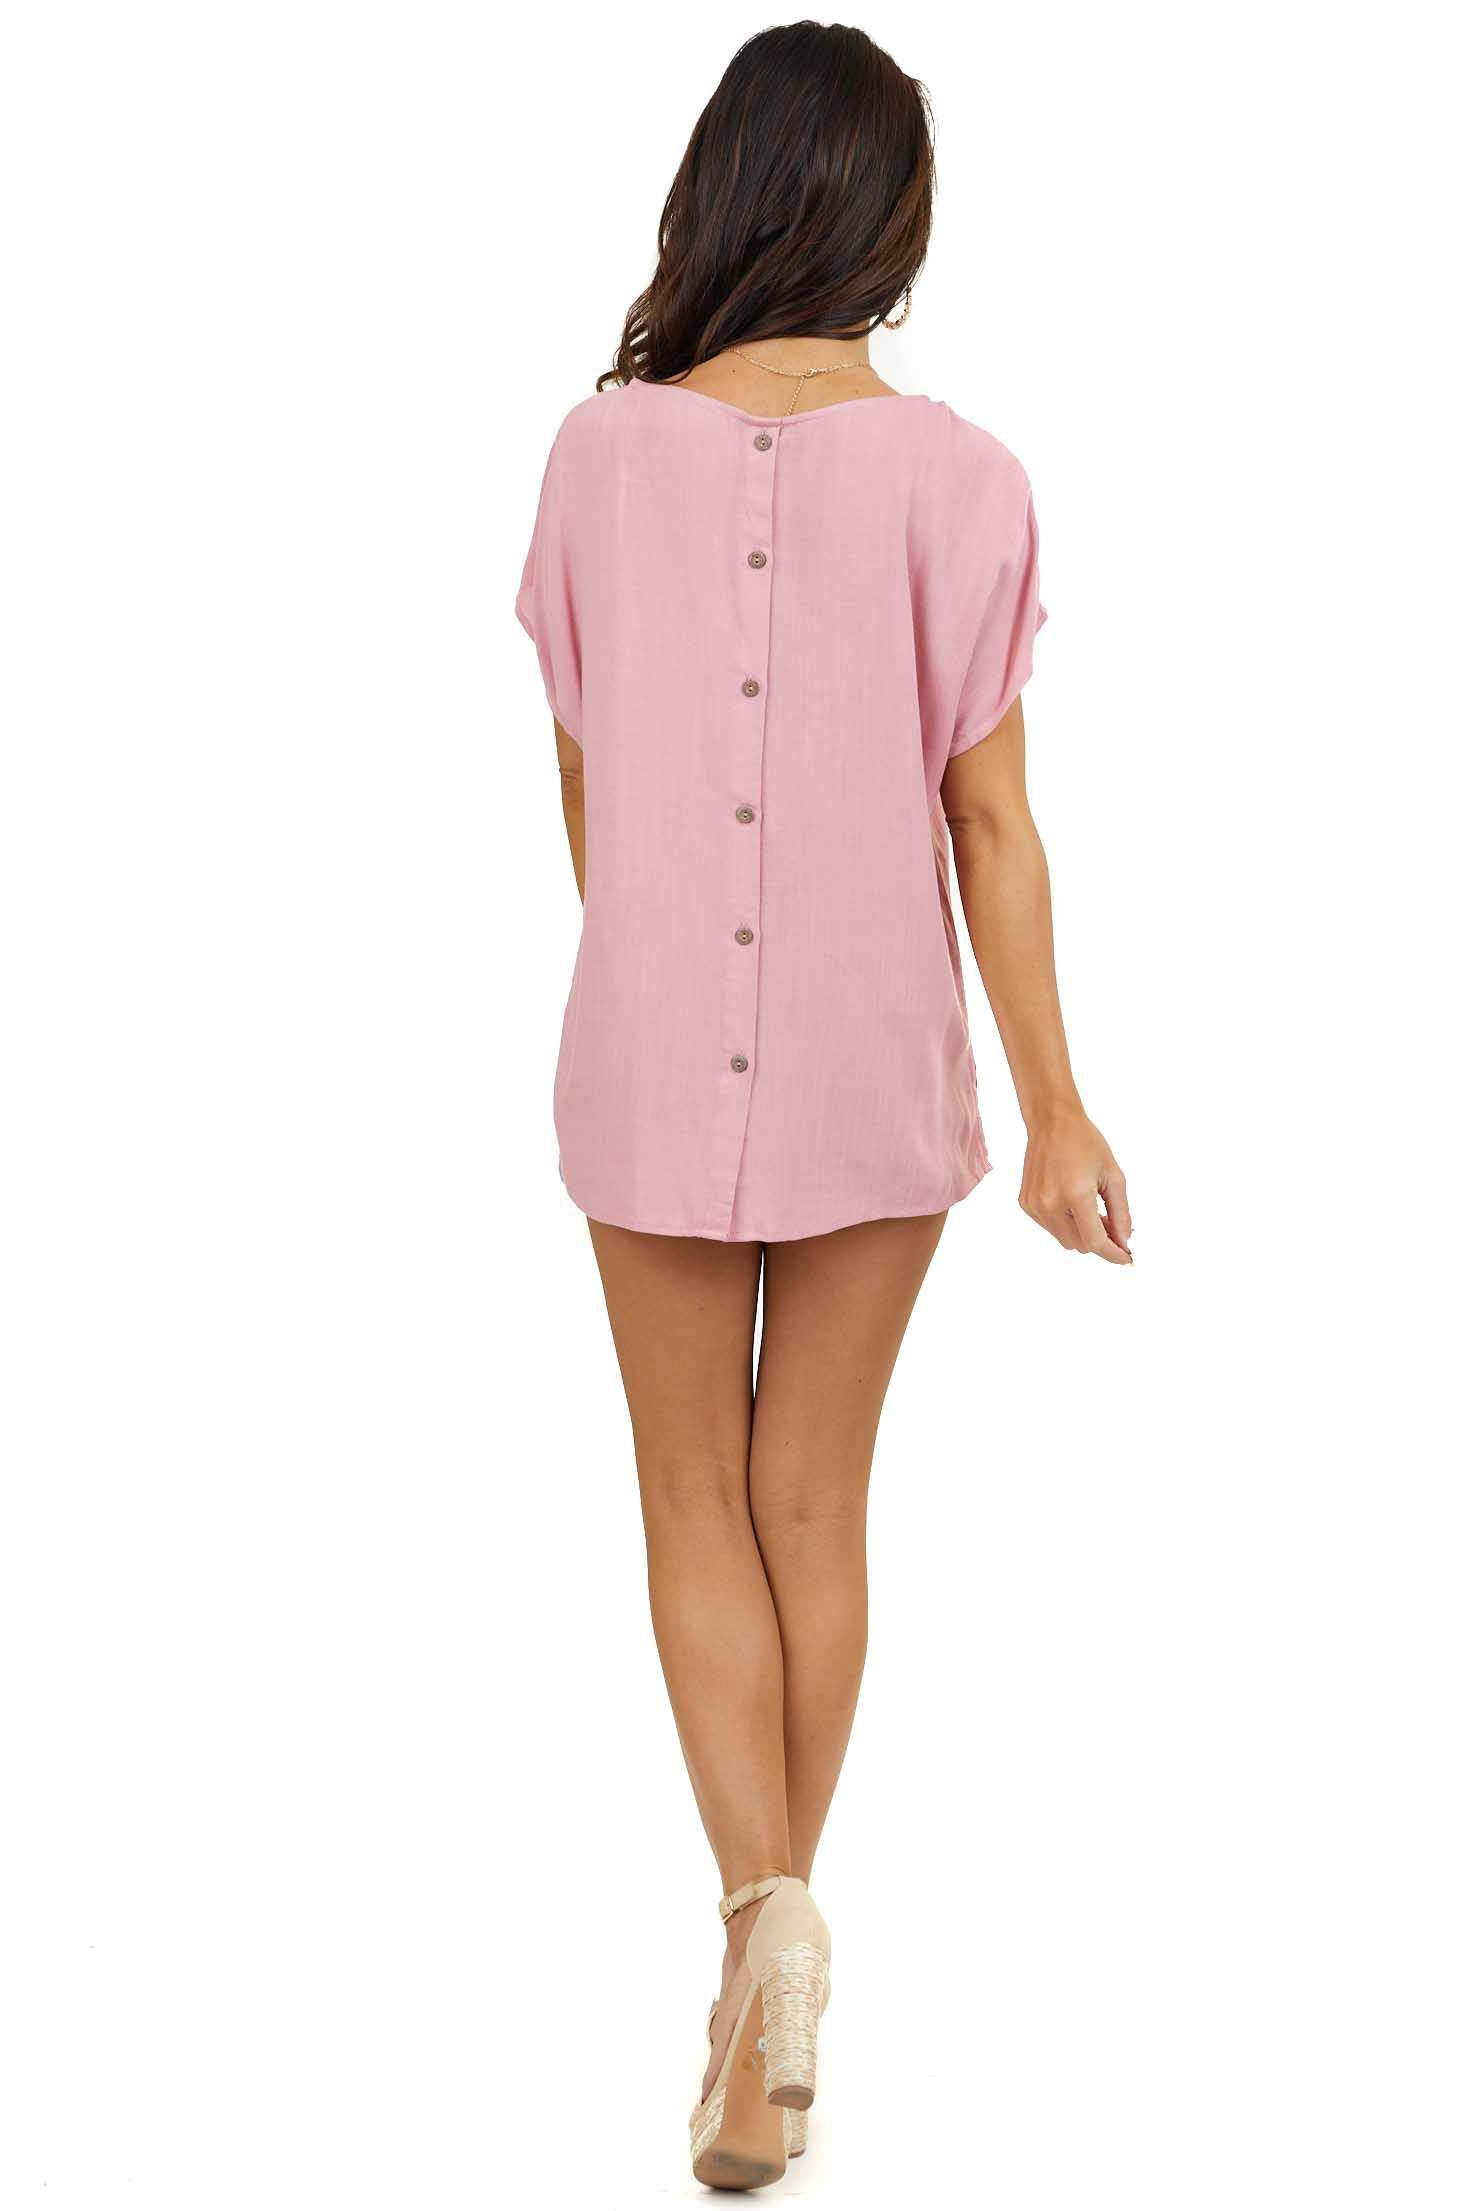 Dusty Blush Short Sleeve Woven Top with Button Up Back